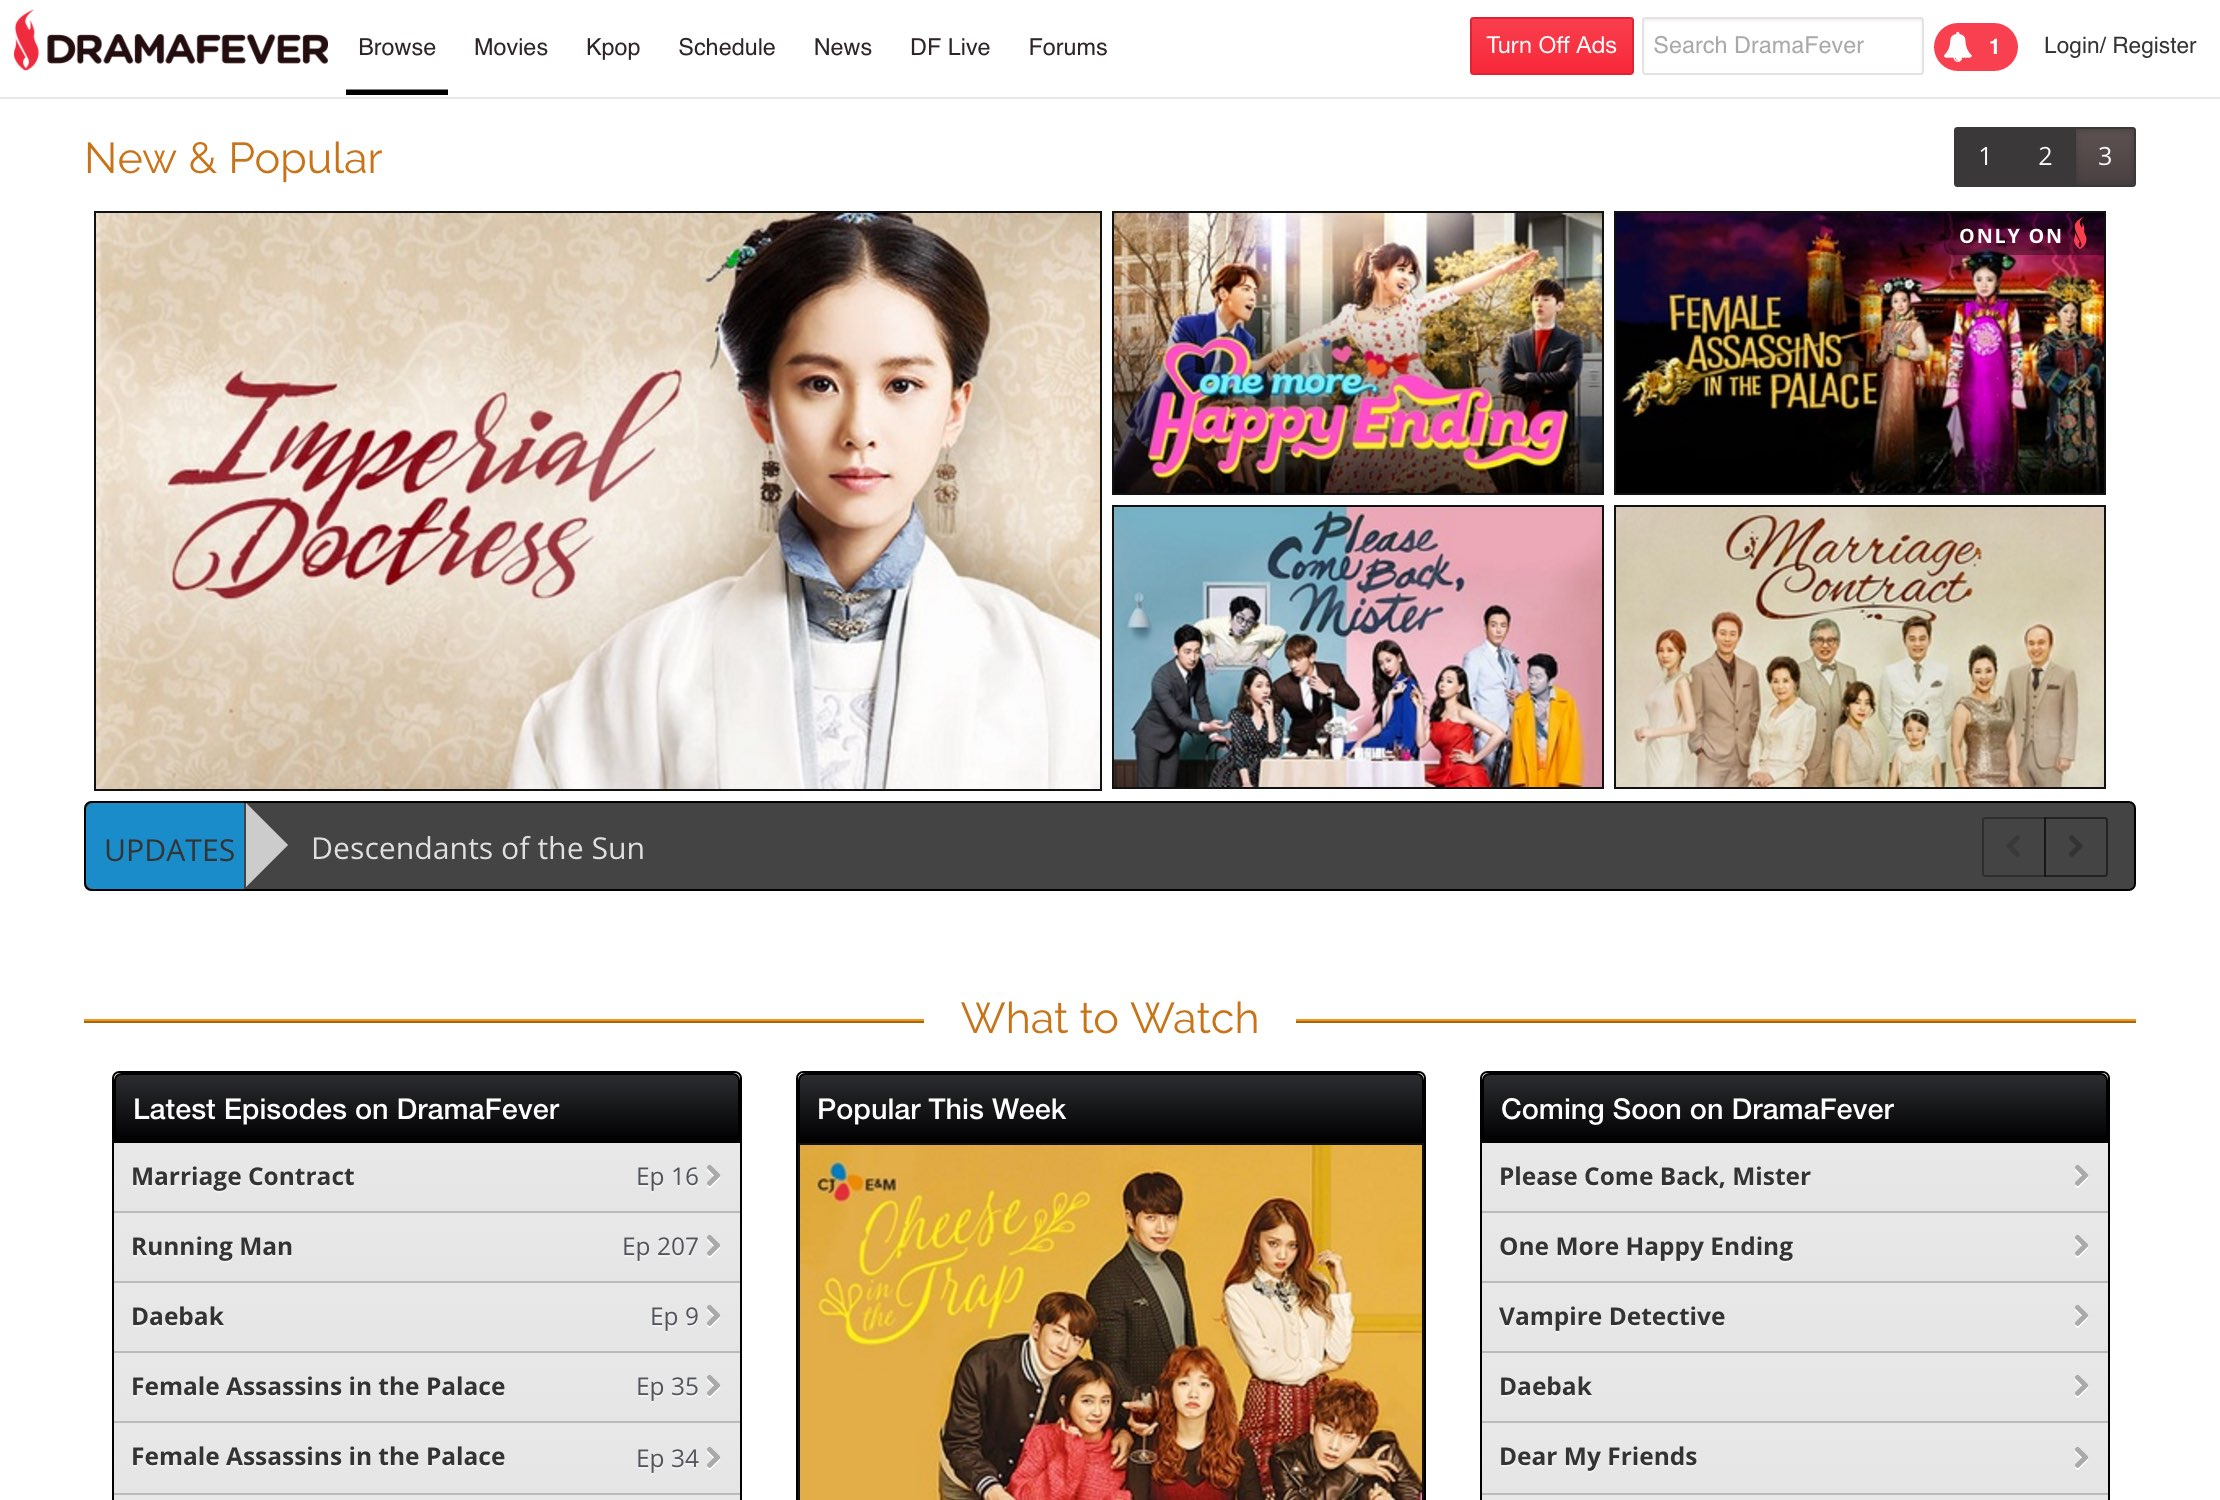 Swiftype Search for DramaFever